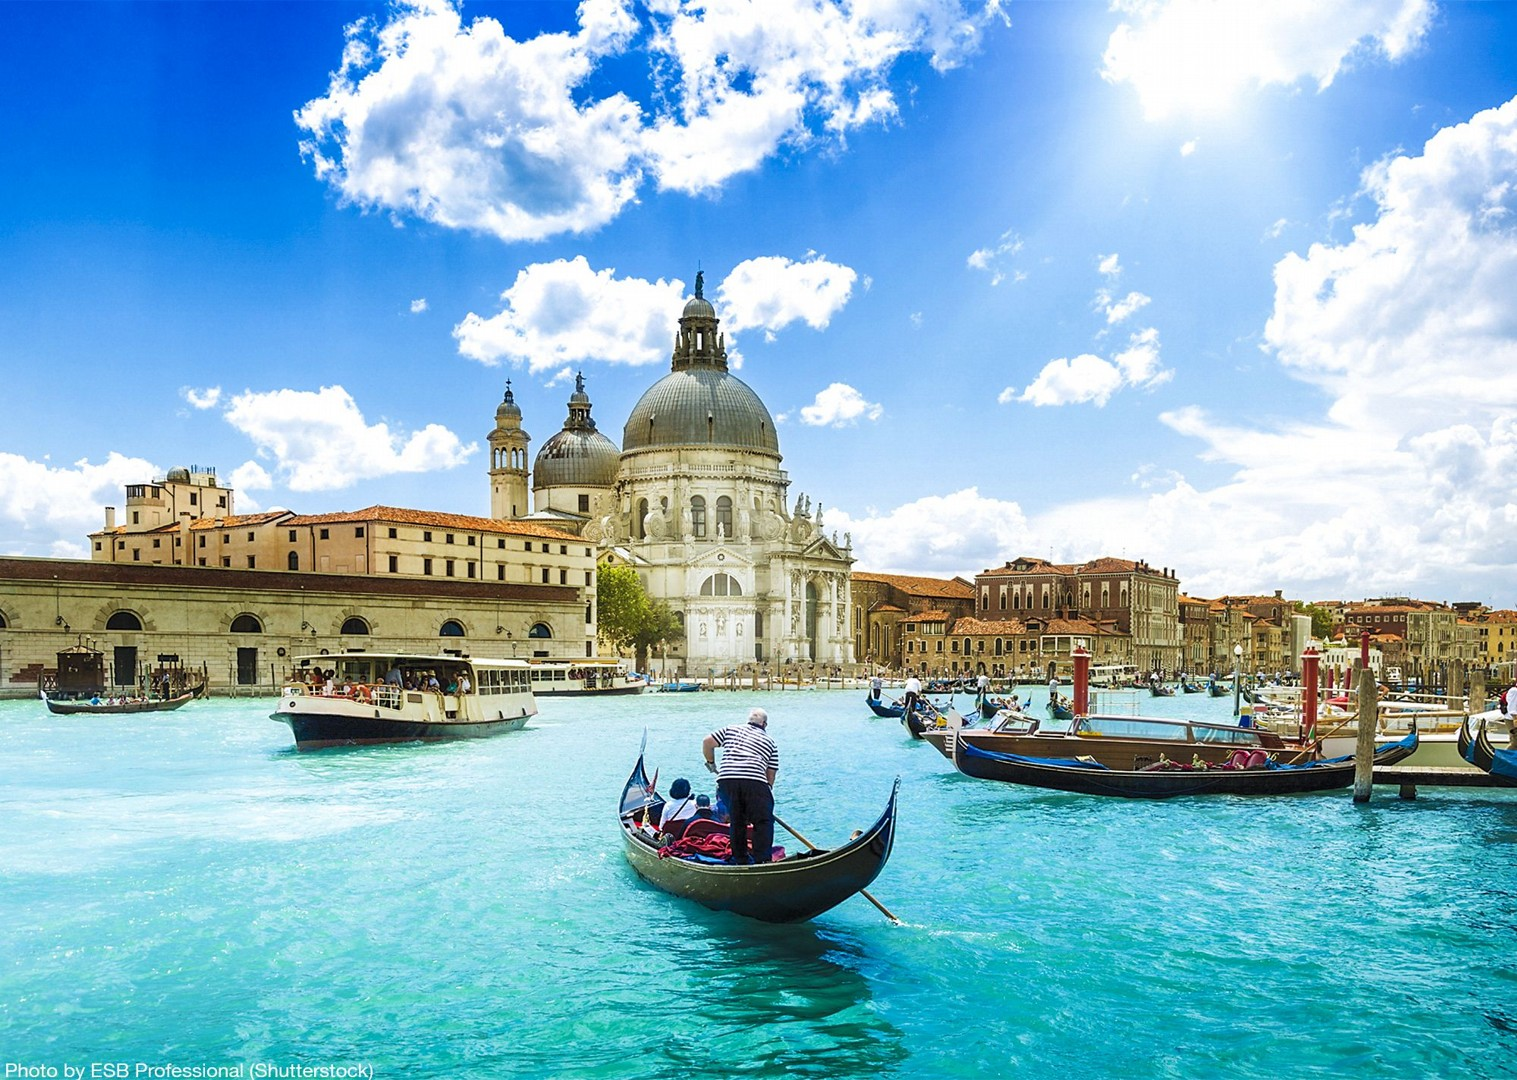 classic-venice-tour-waterways-piazza-san-marco-culture-cycling-holiday.jpg - Italy - Venetian Waterways (Mantova to Venice) - Bike and Barge Holiday - Leisure Cycling